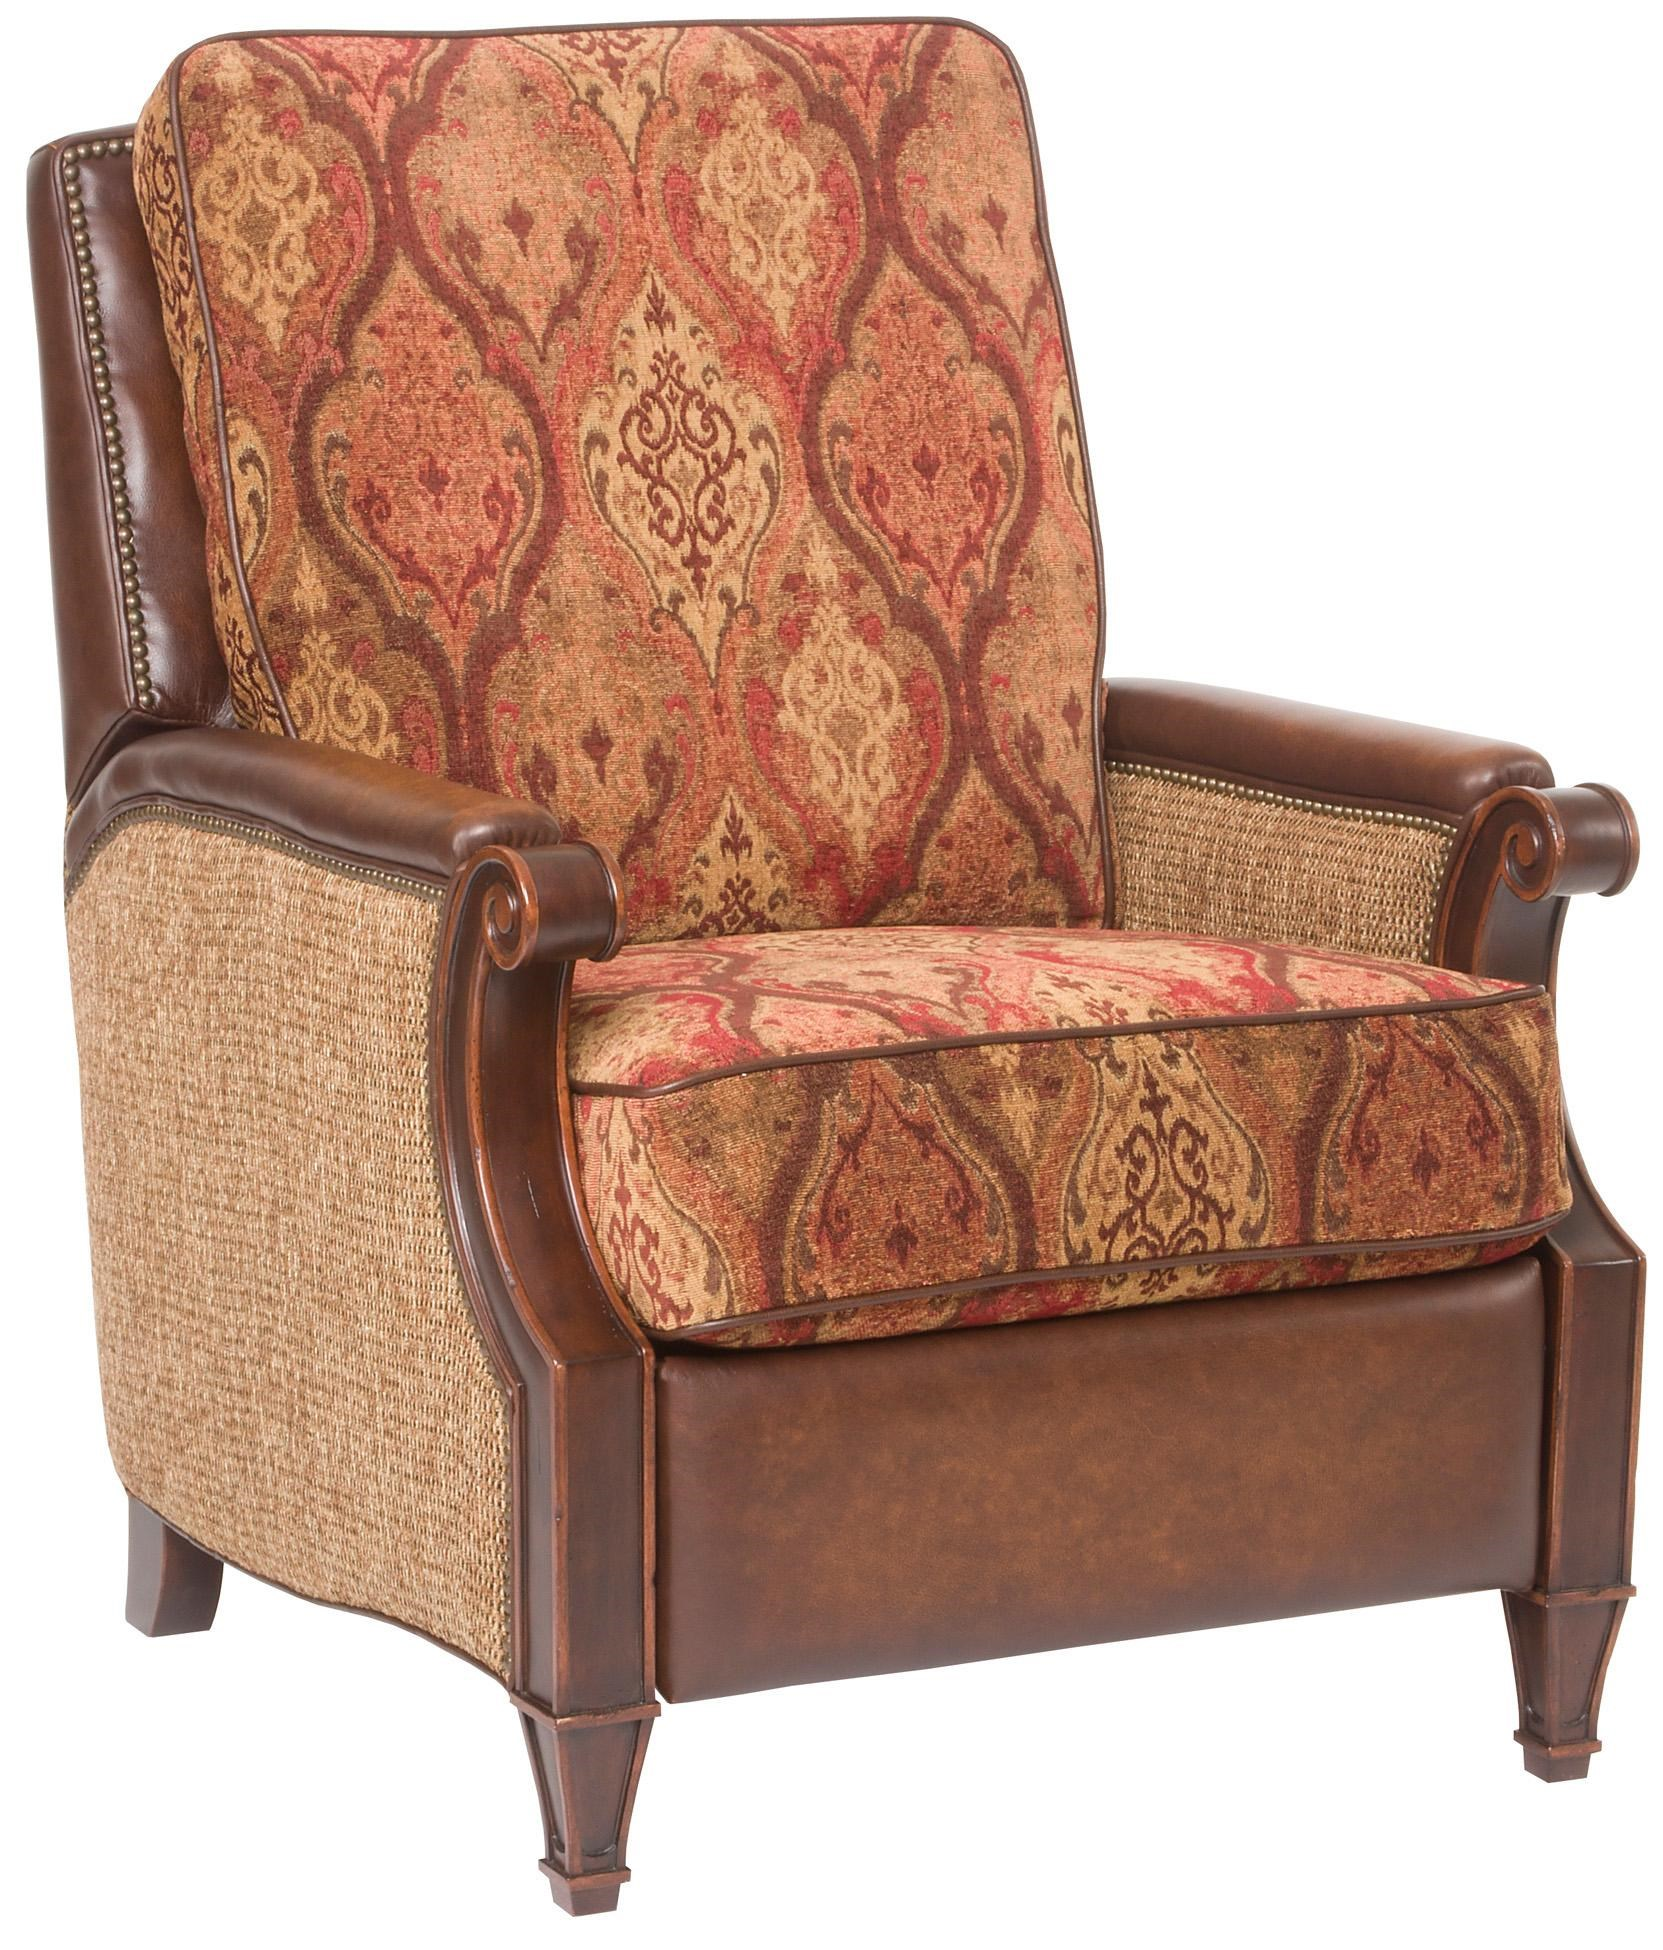 Hooker Furniture Reclining Chairs Recliner Chair With Accent Upholstered  Seat And Backrest, Leather Trim And Brass Nail Heads